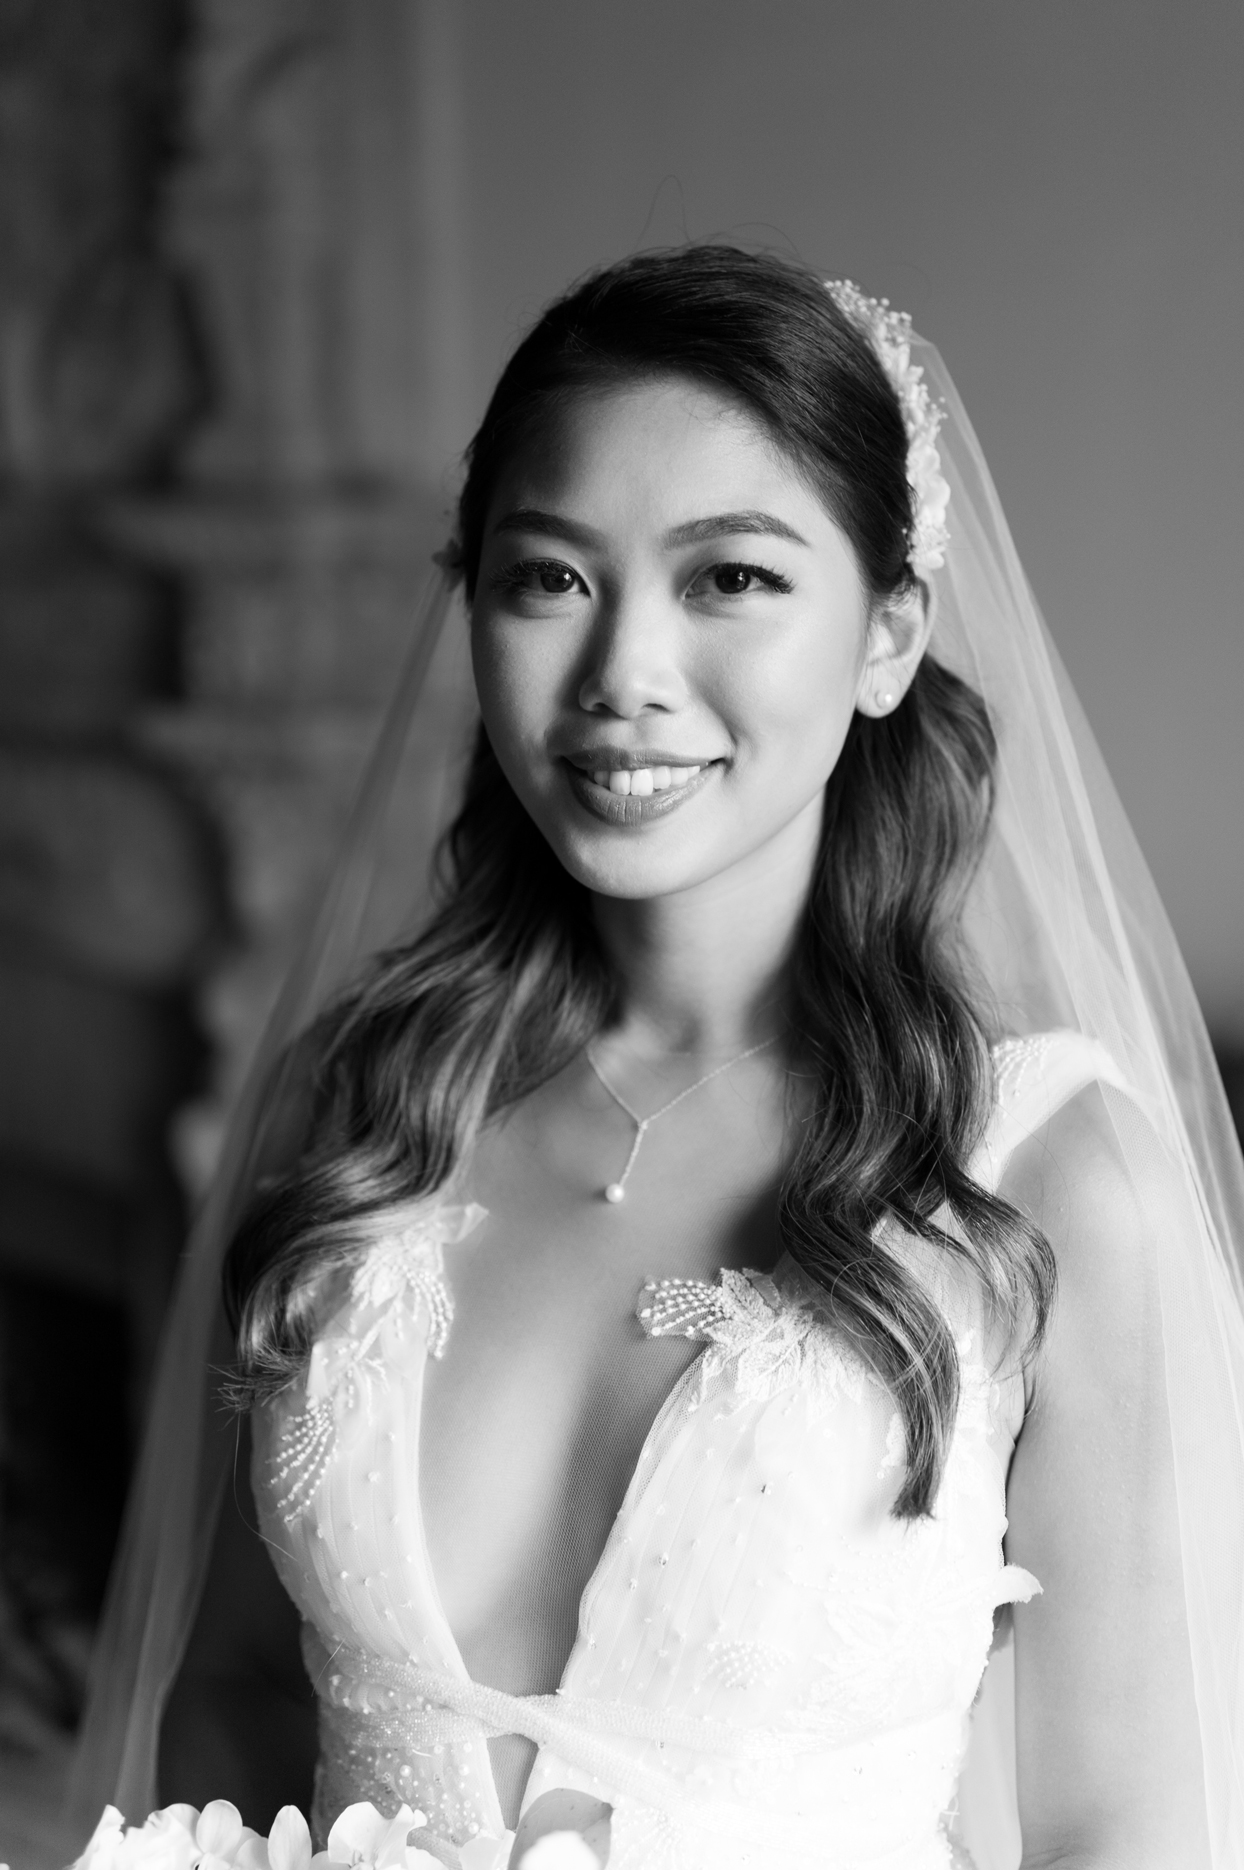 bride smiling for portrait wearing wedding dress with veil and minimal pearl necklace